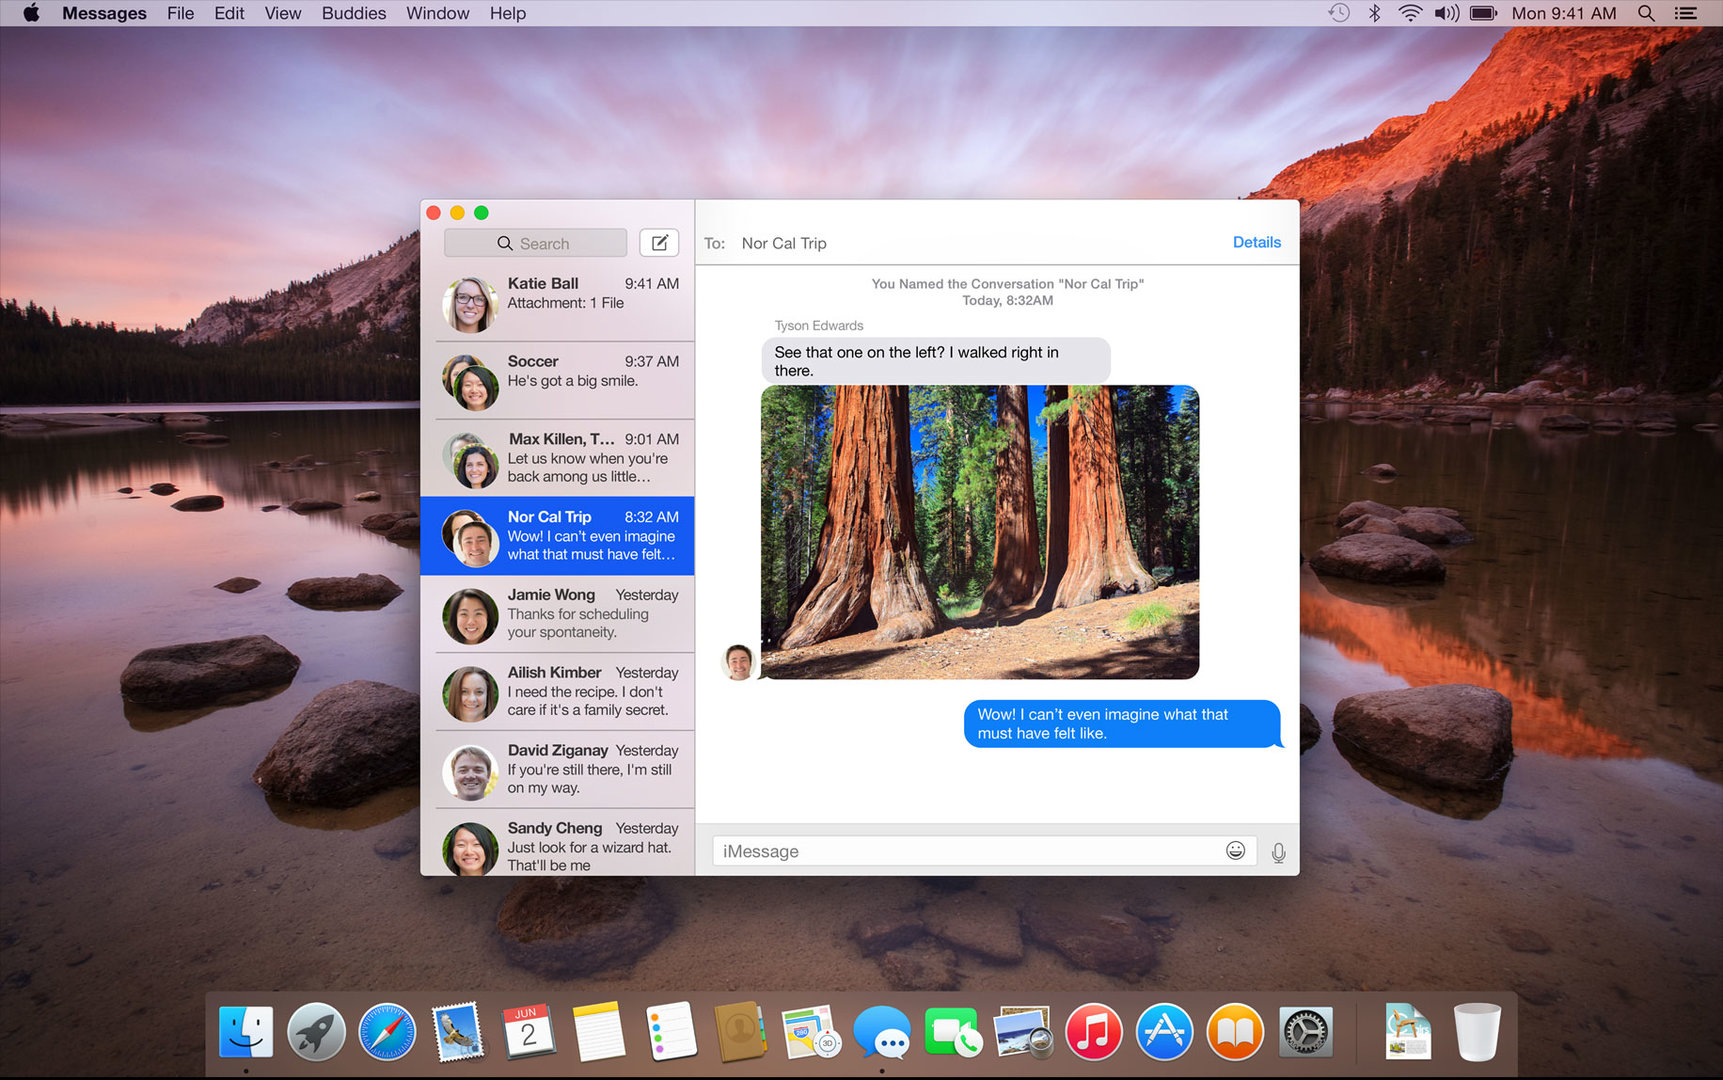 Messages in OS X 10.10